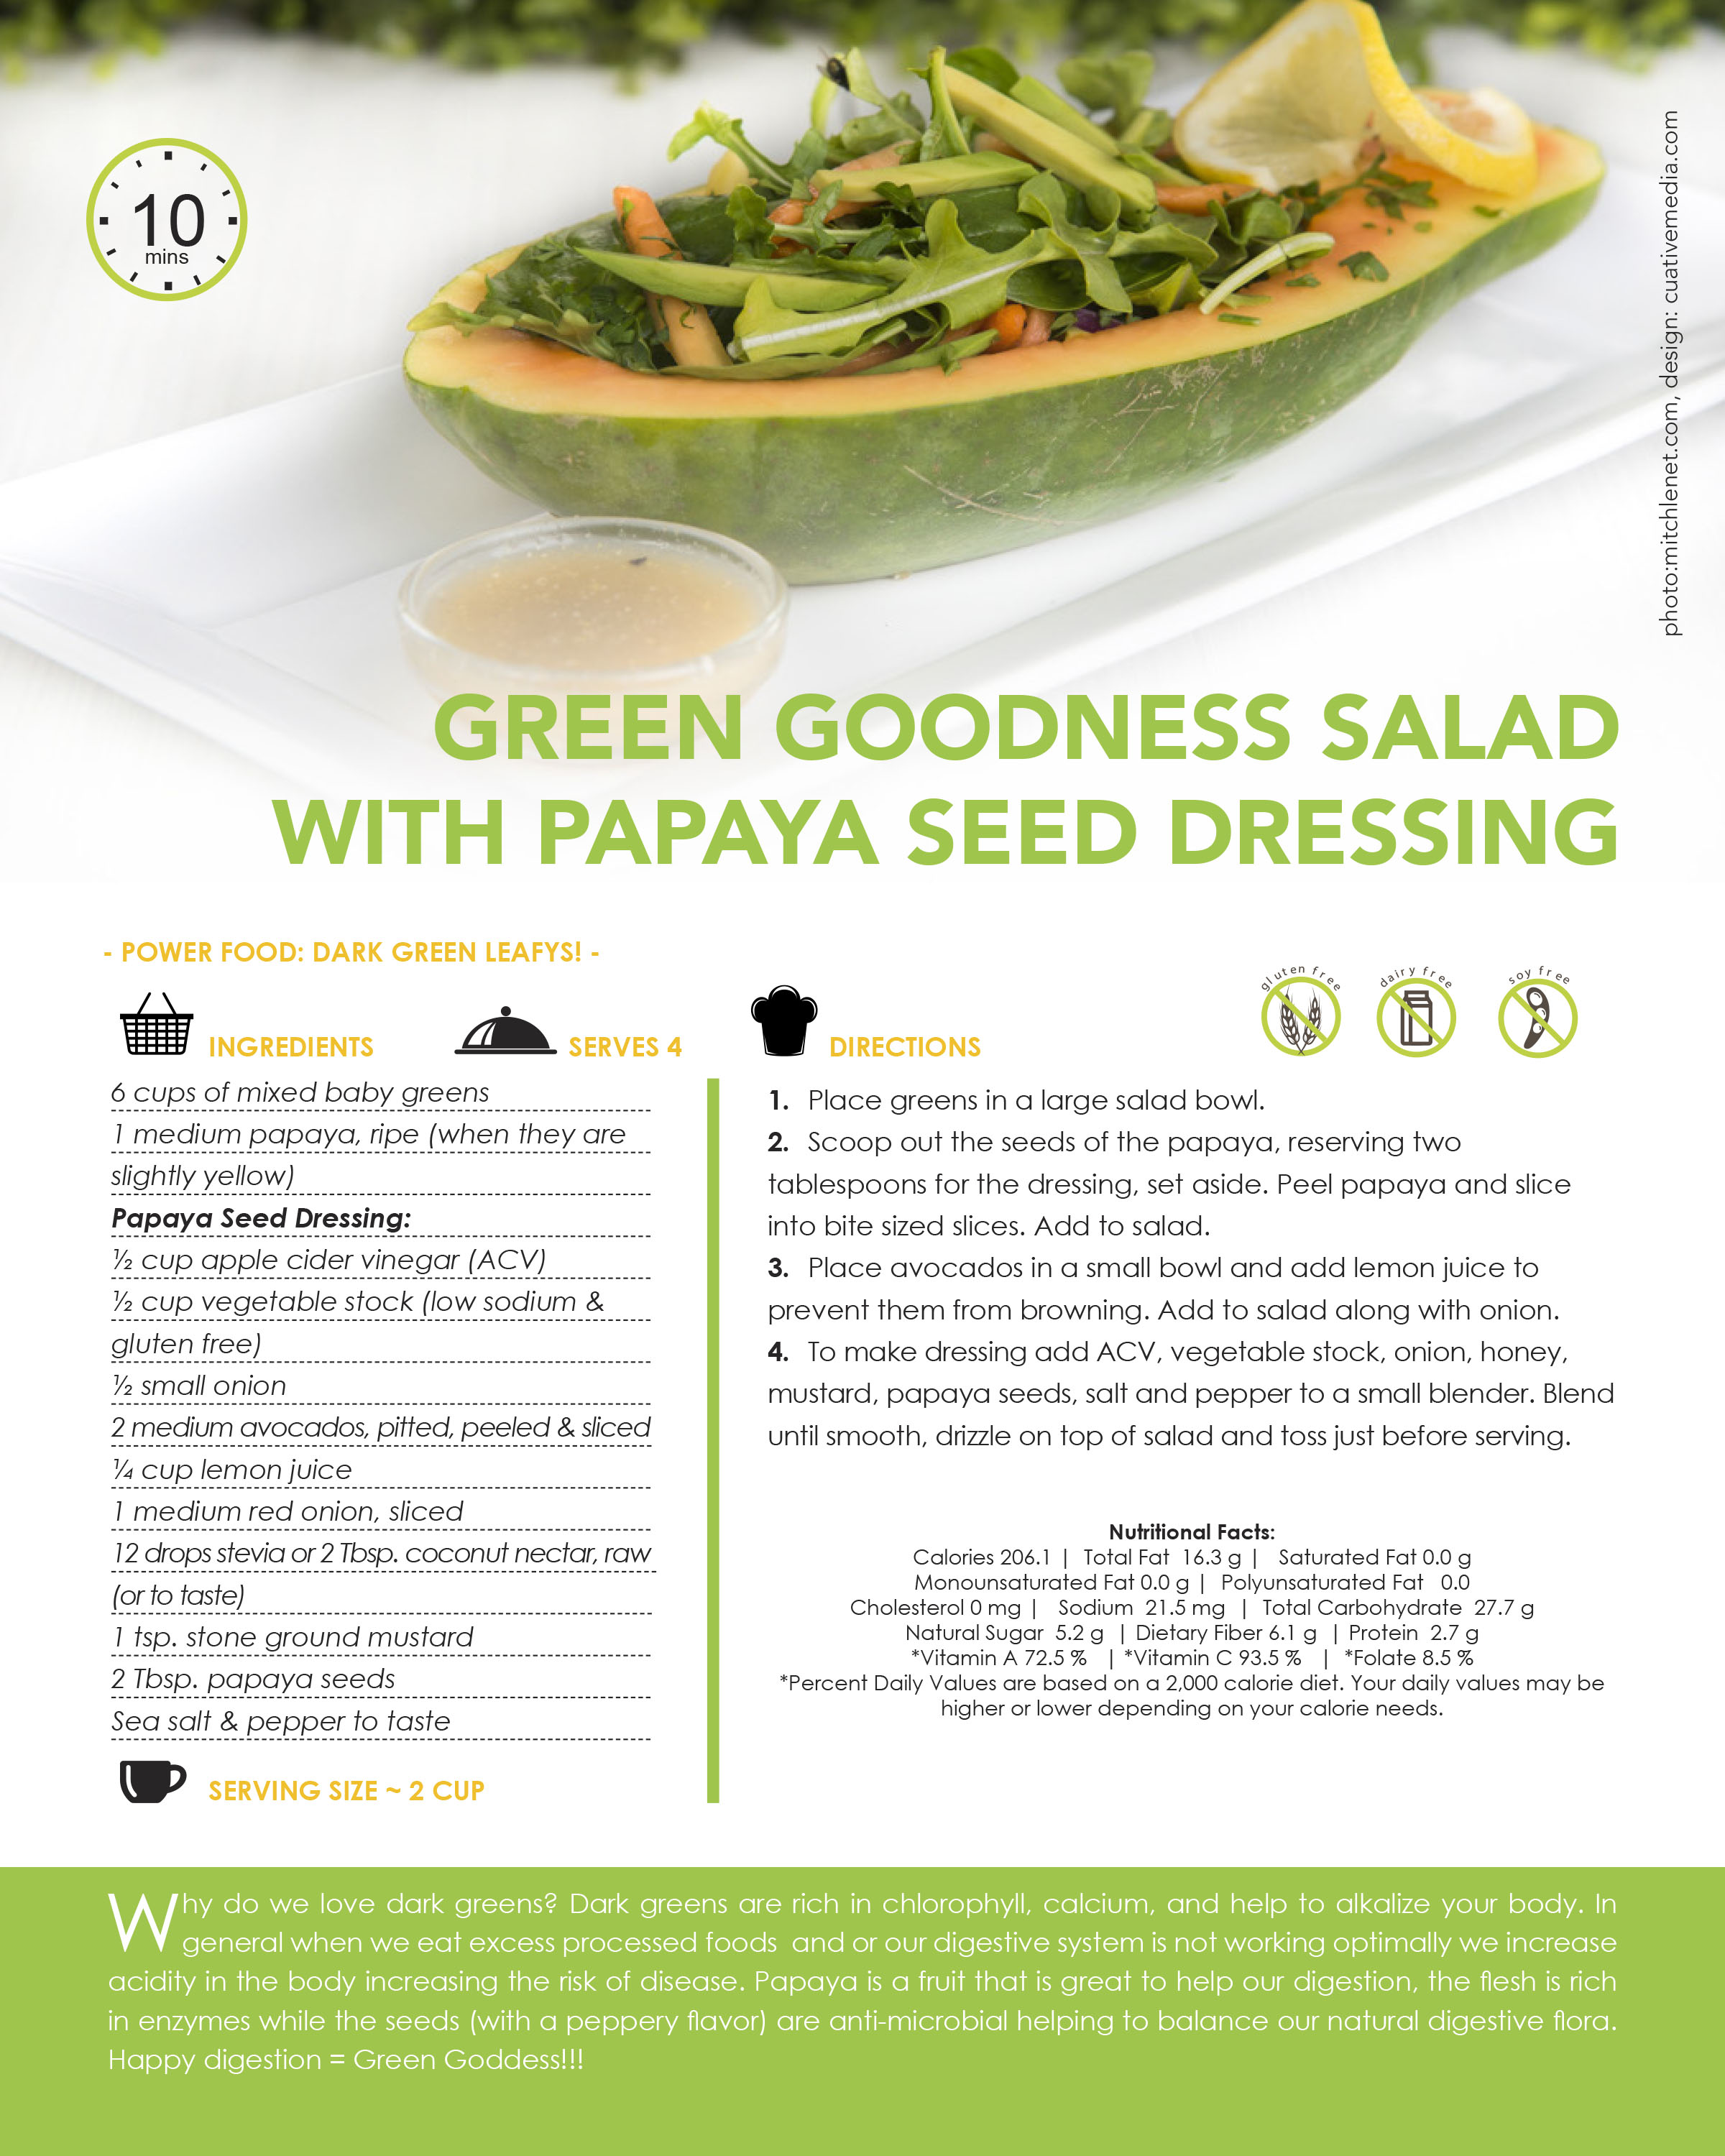 GREEN GOODNESS SALAD WITH PAPAYA SEED DRESSING